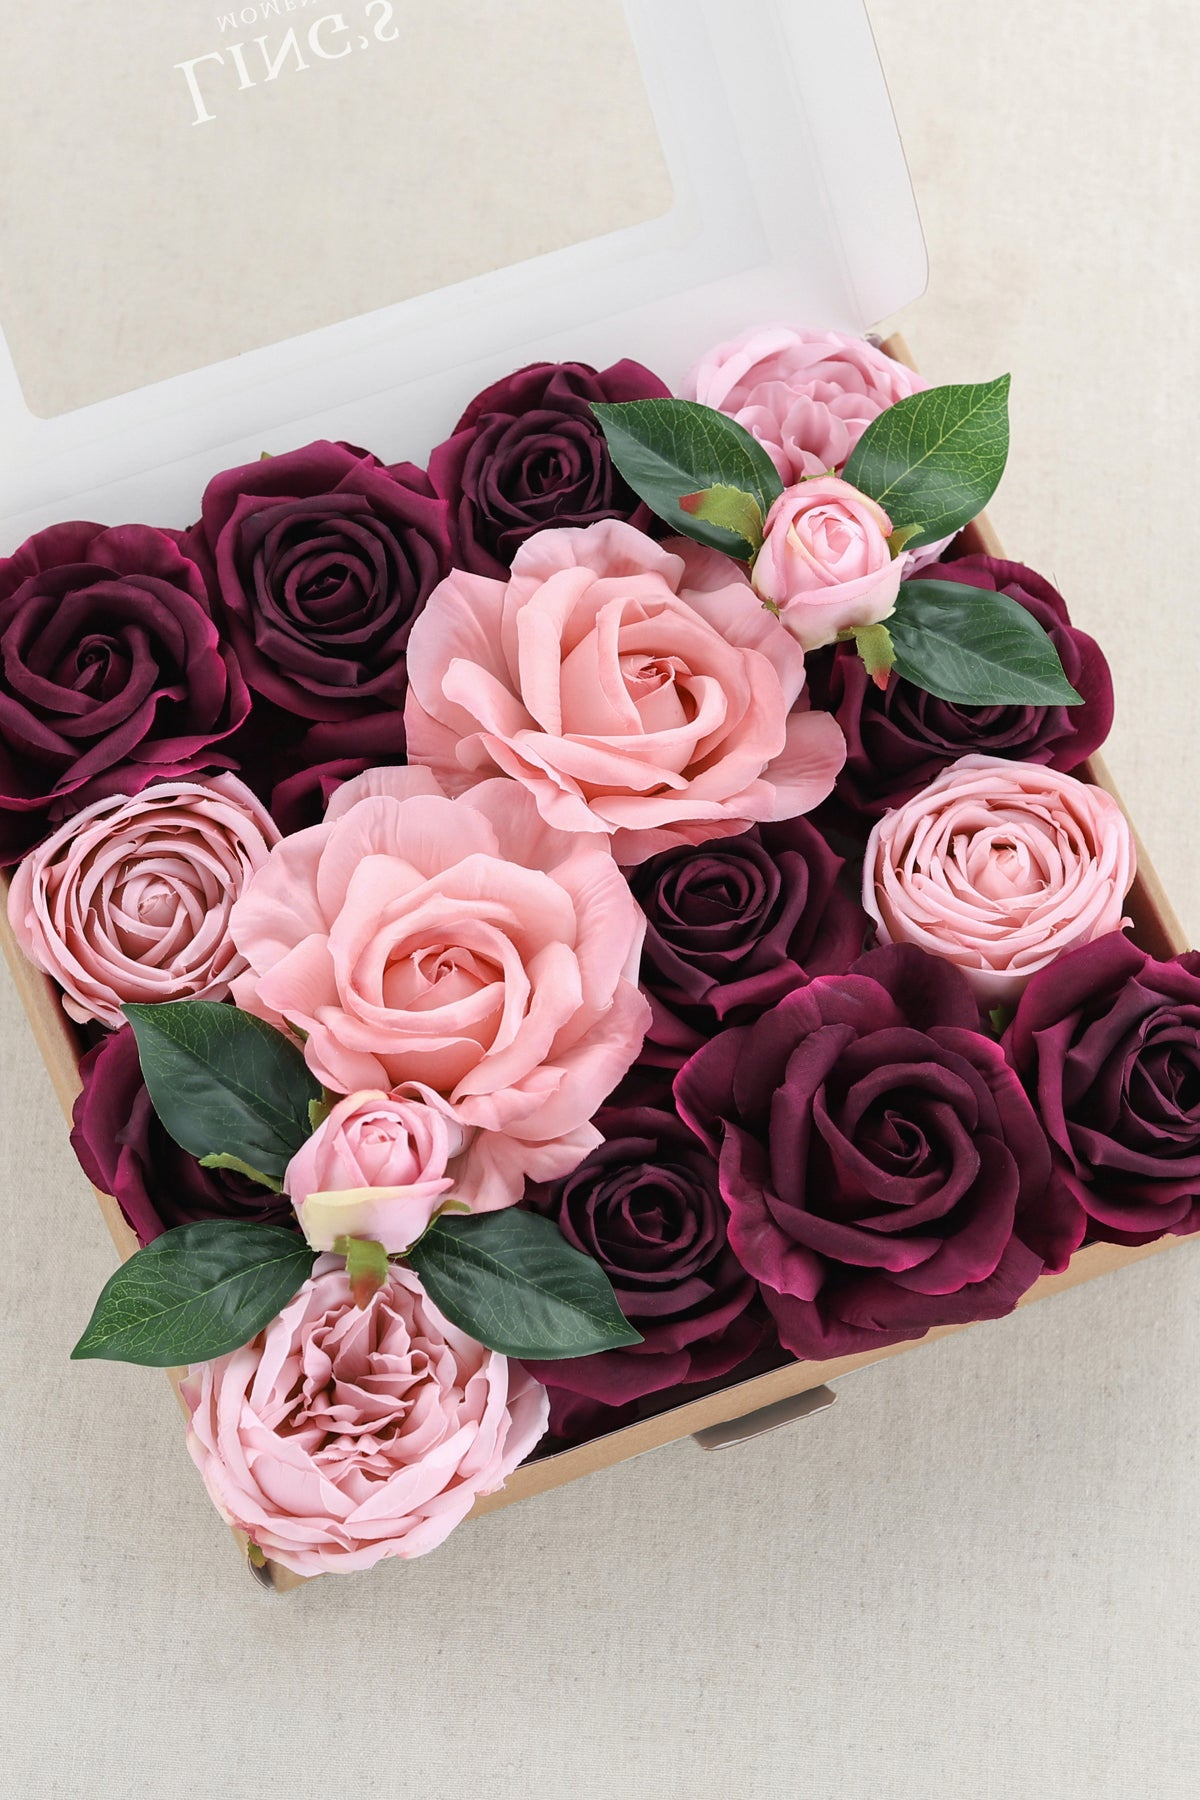 Silk Chorale Rose & Vendela Rose with Stem - Marsala